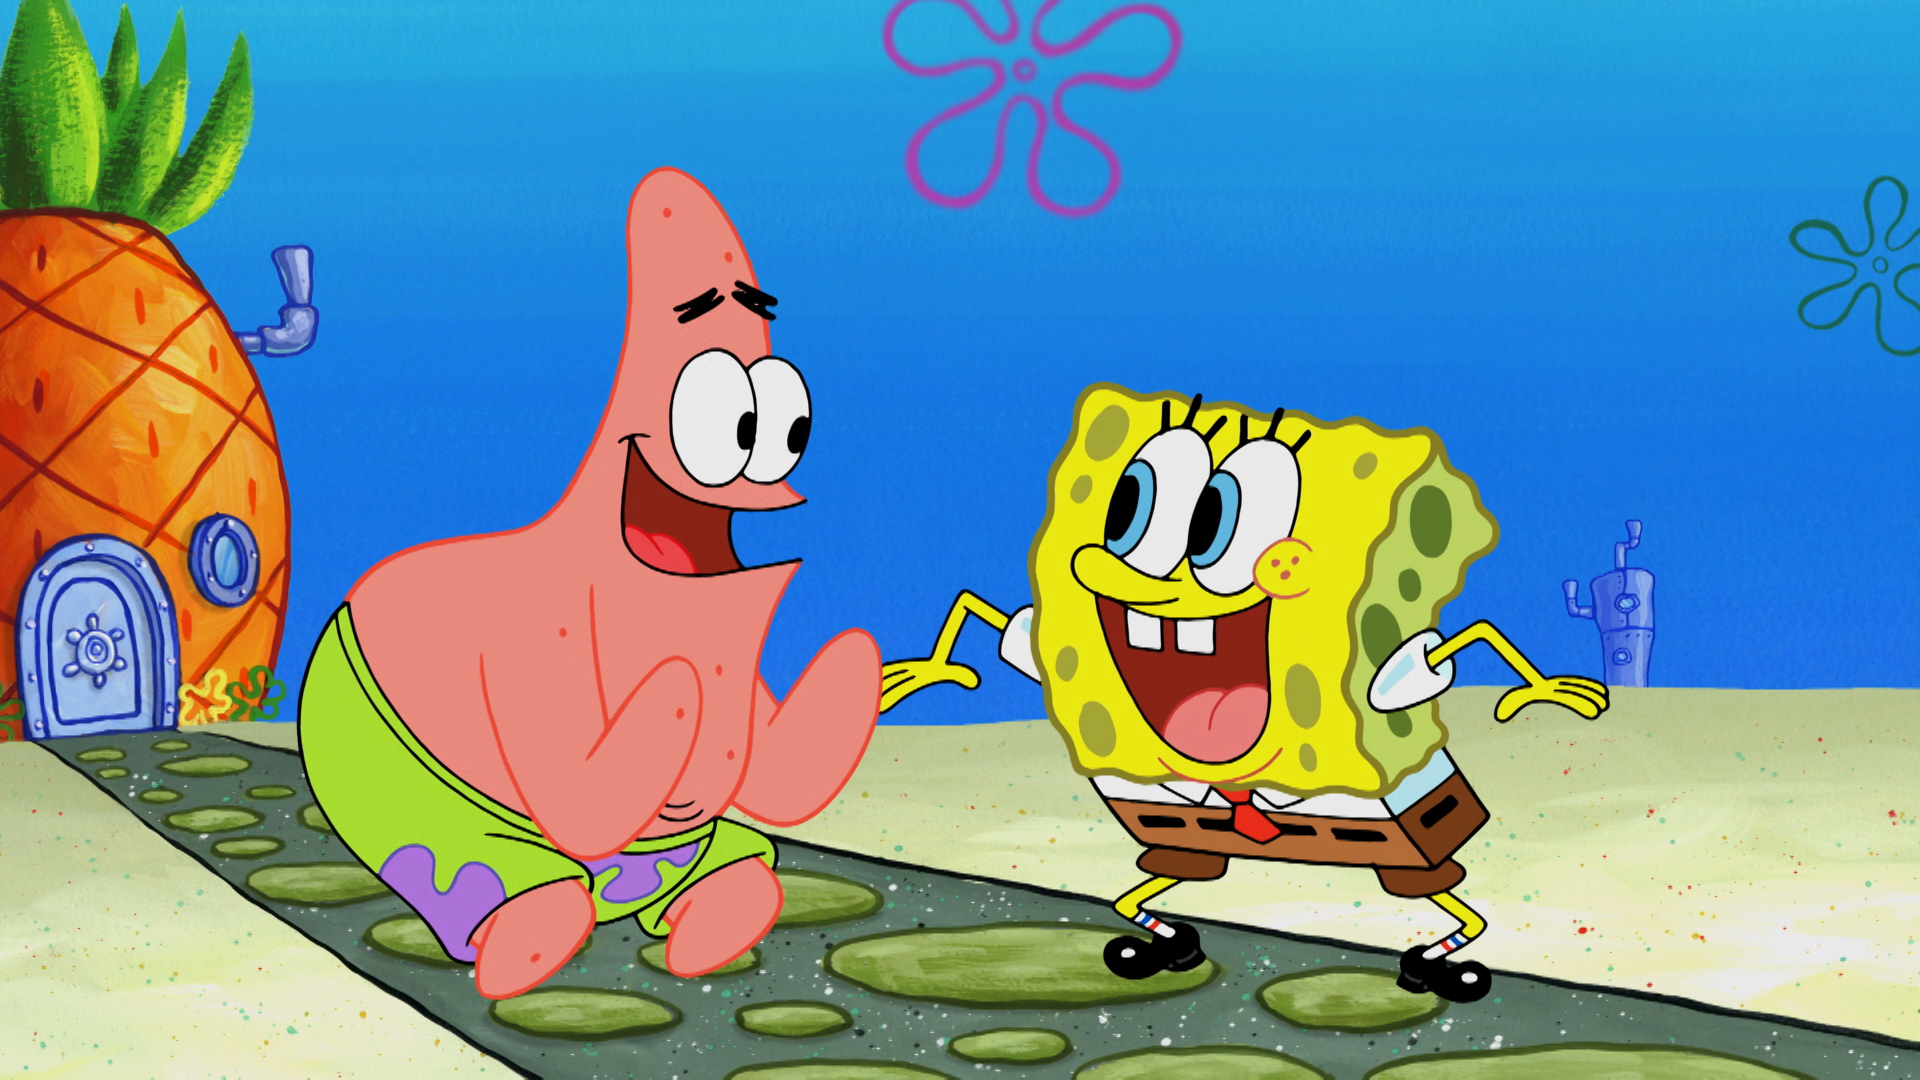 Have we finally reached the death of Spongebob Squarepants?